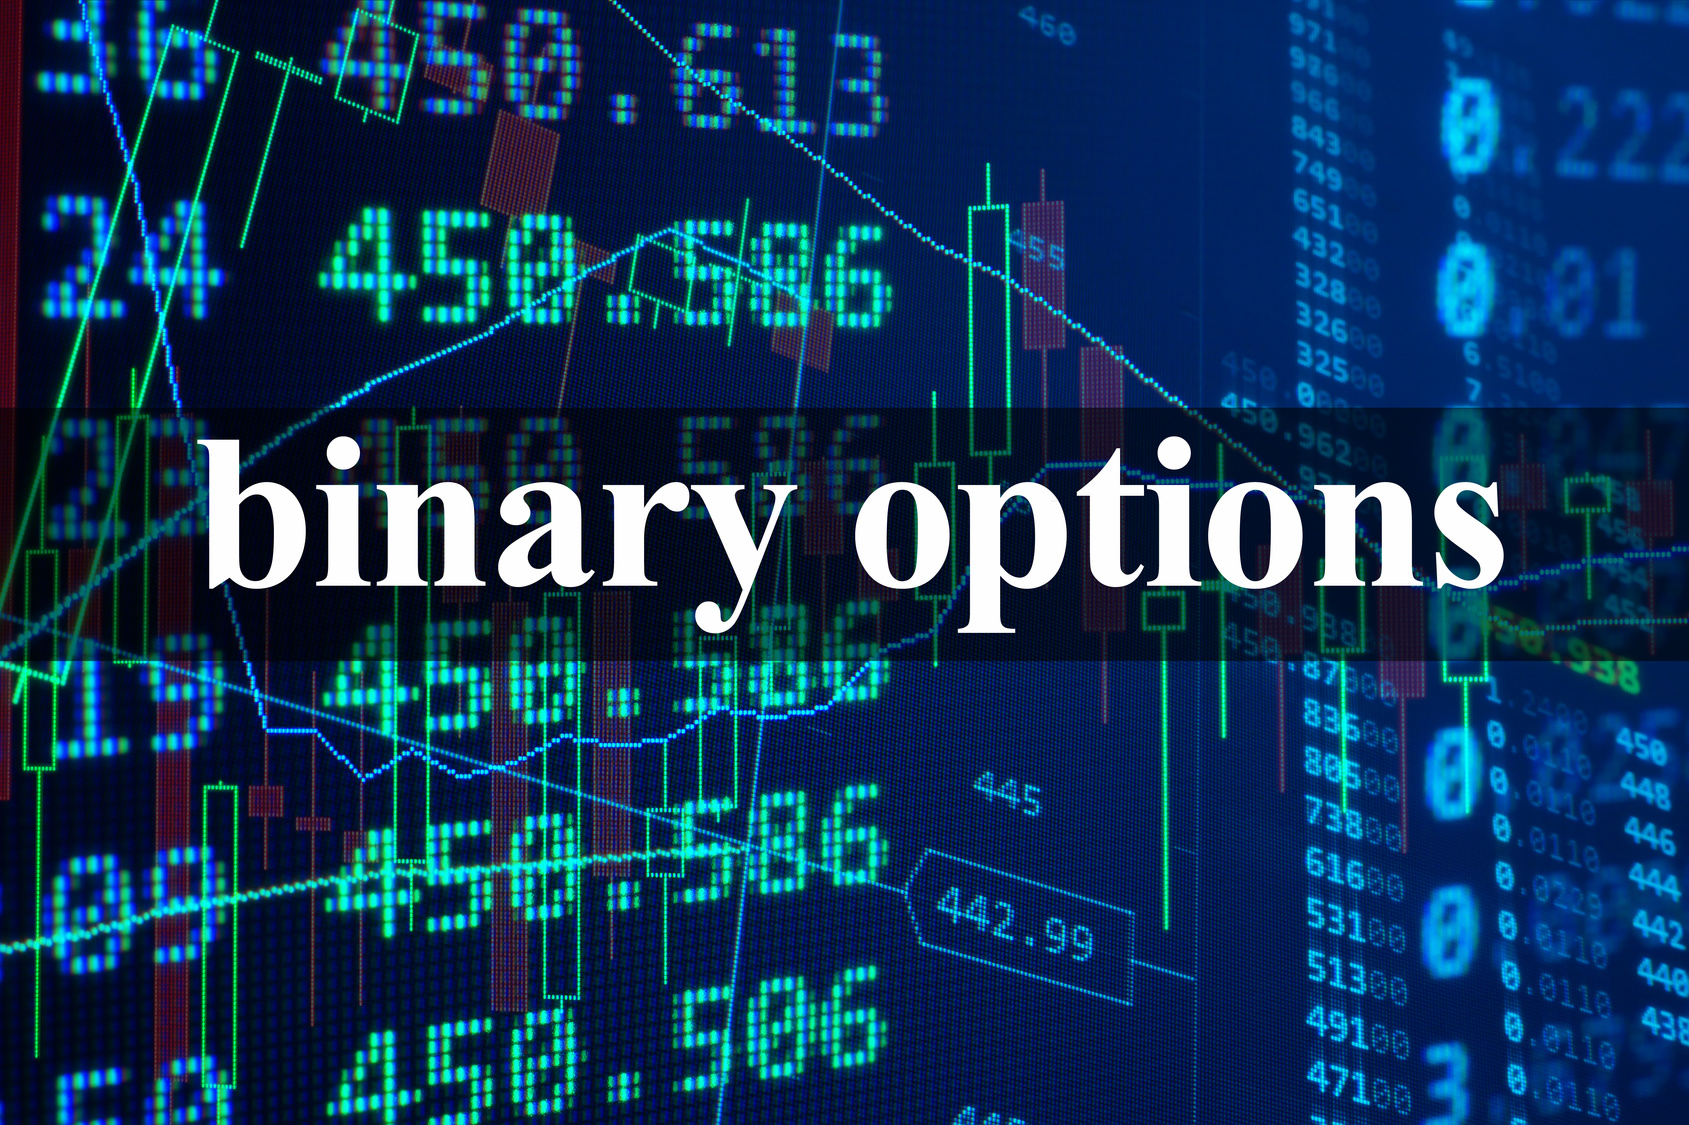 Plus options binary trading